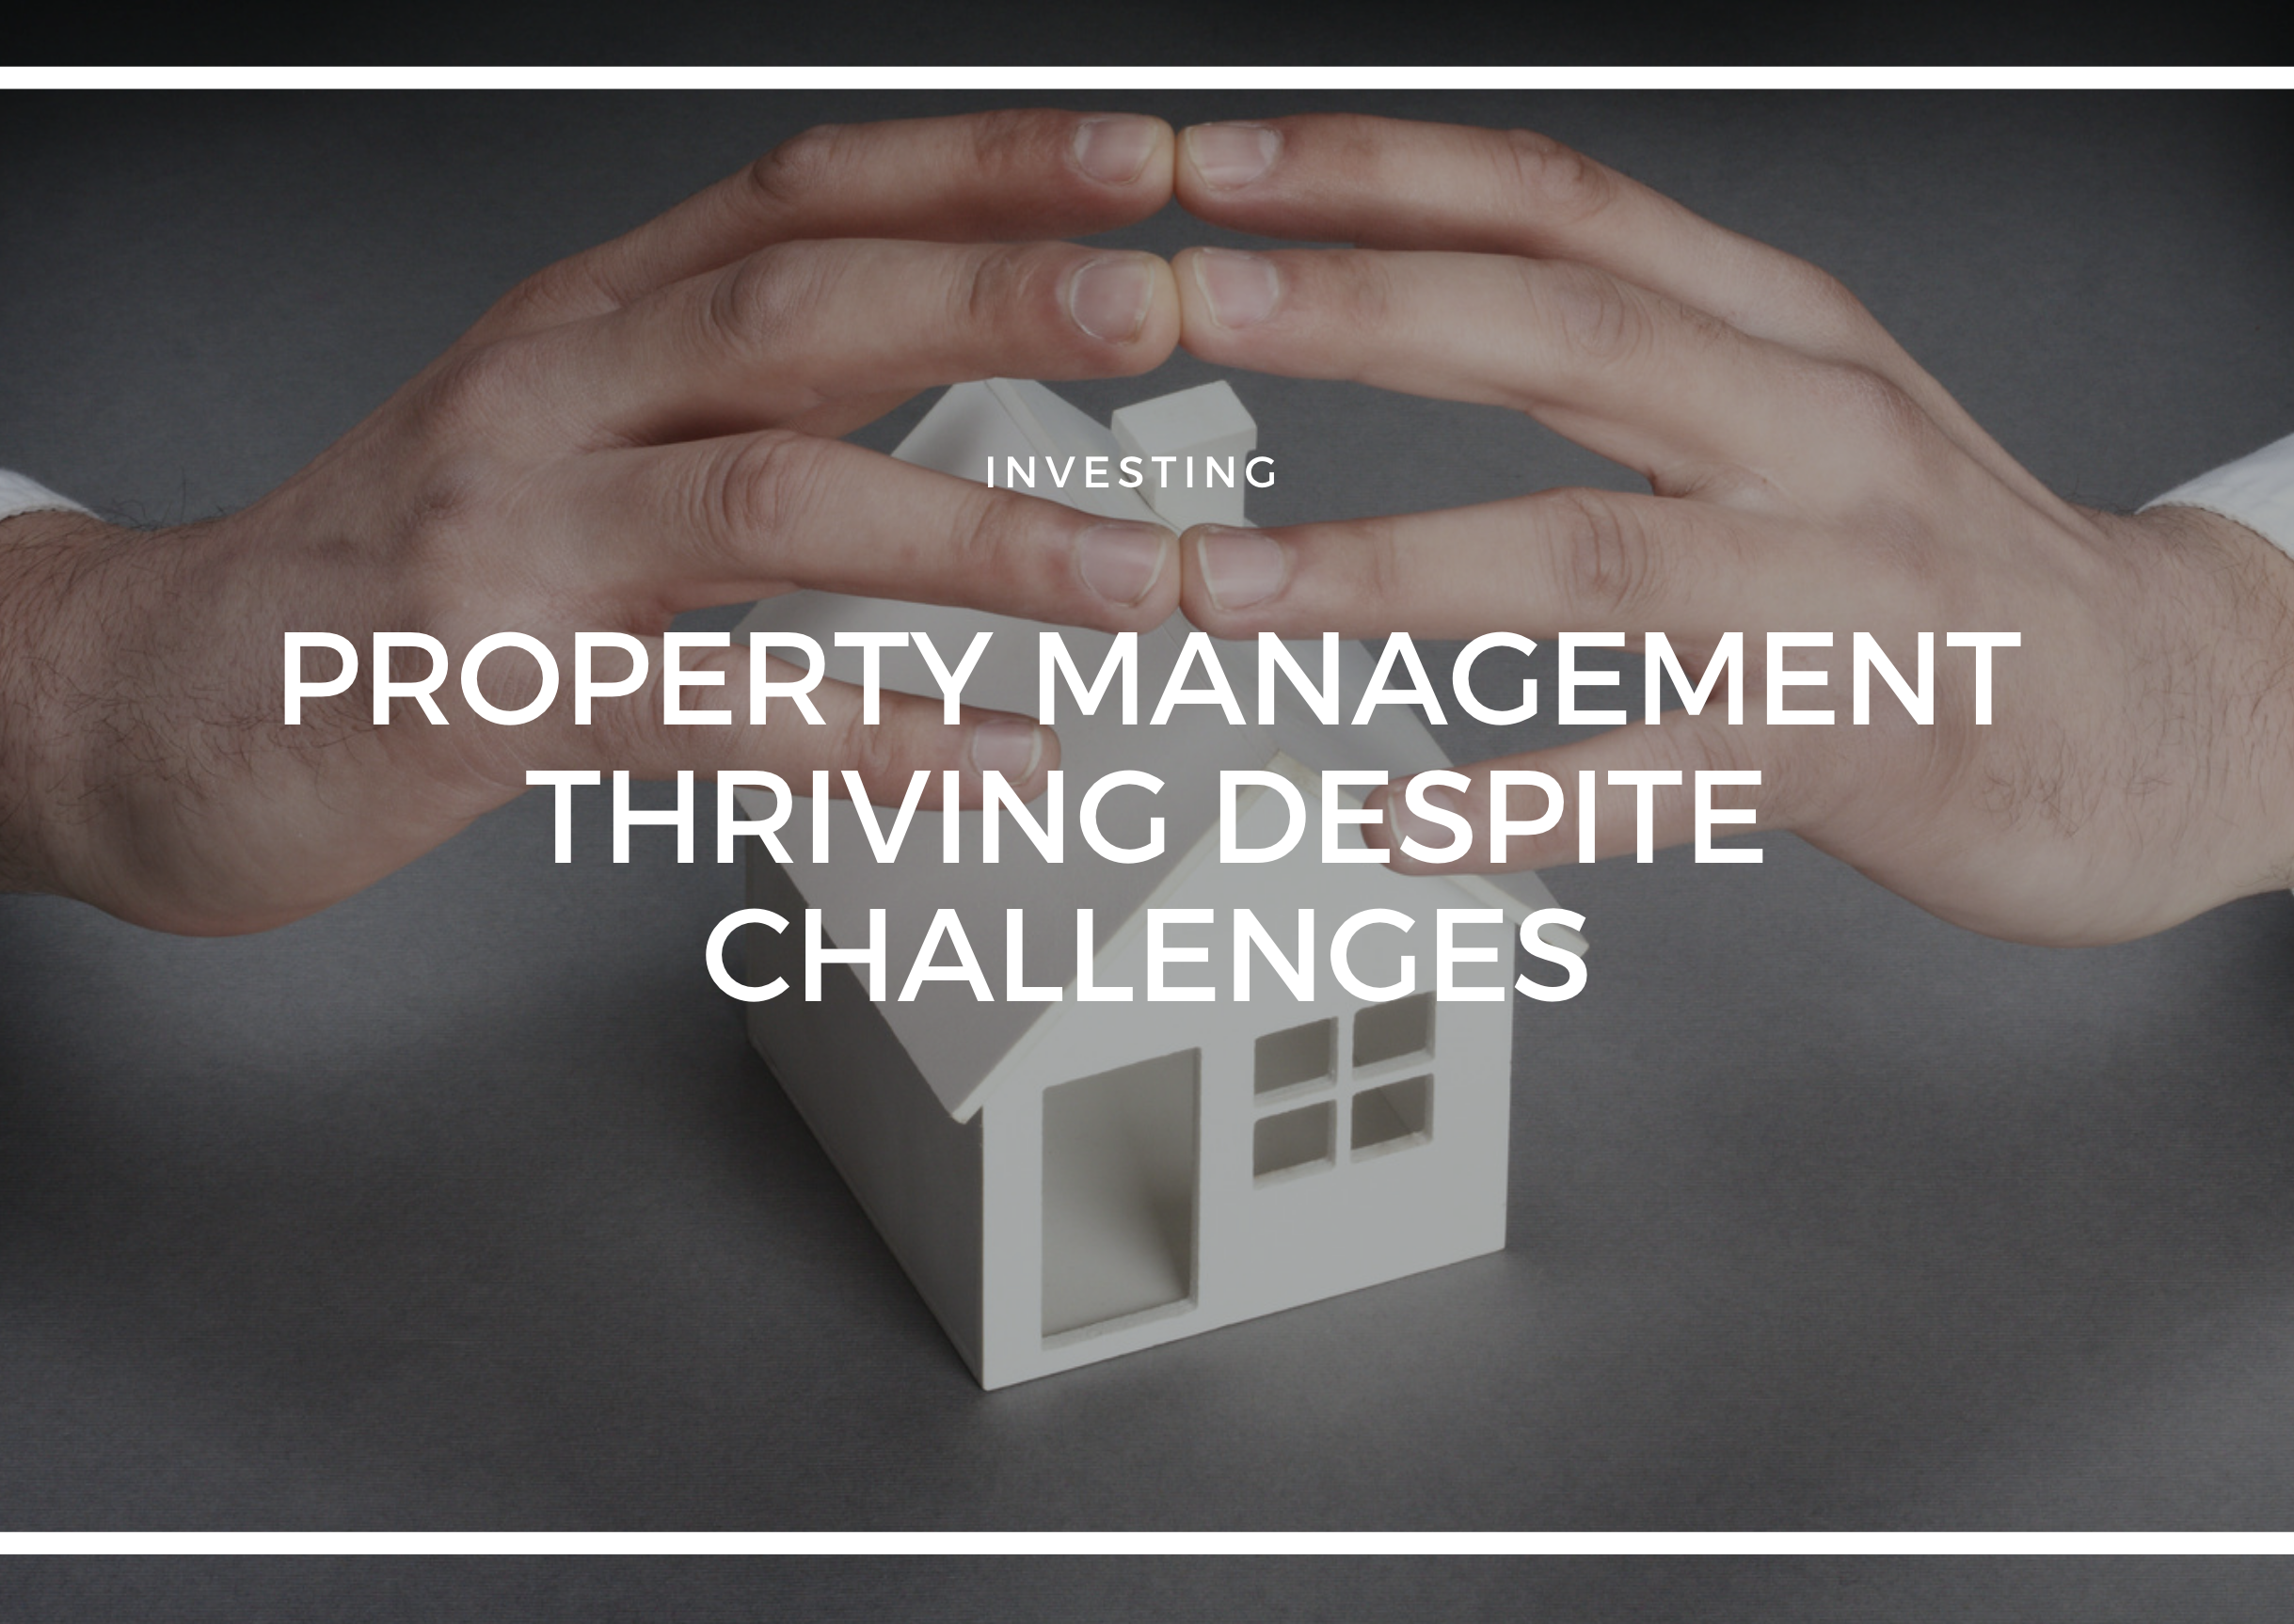 PROPERTY MANAGEMENT THRIVING DESPITE CHALLENGES